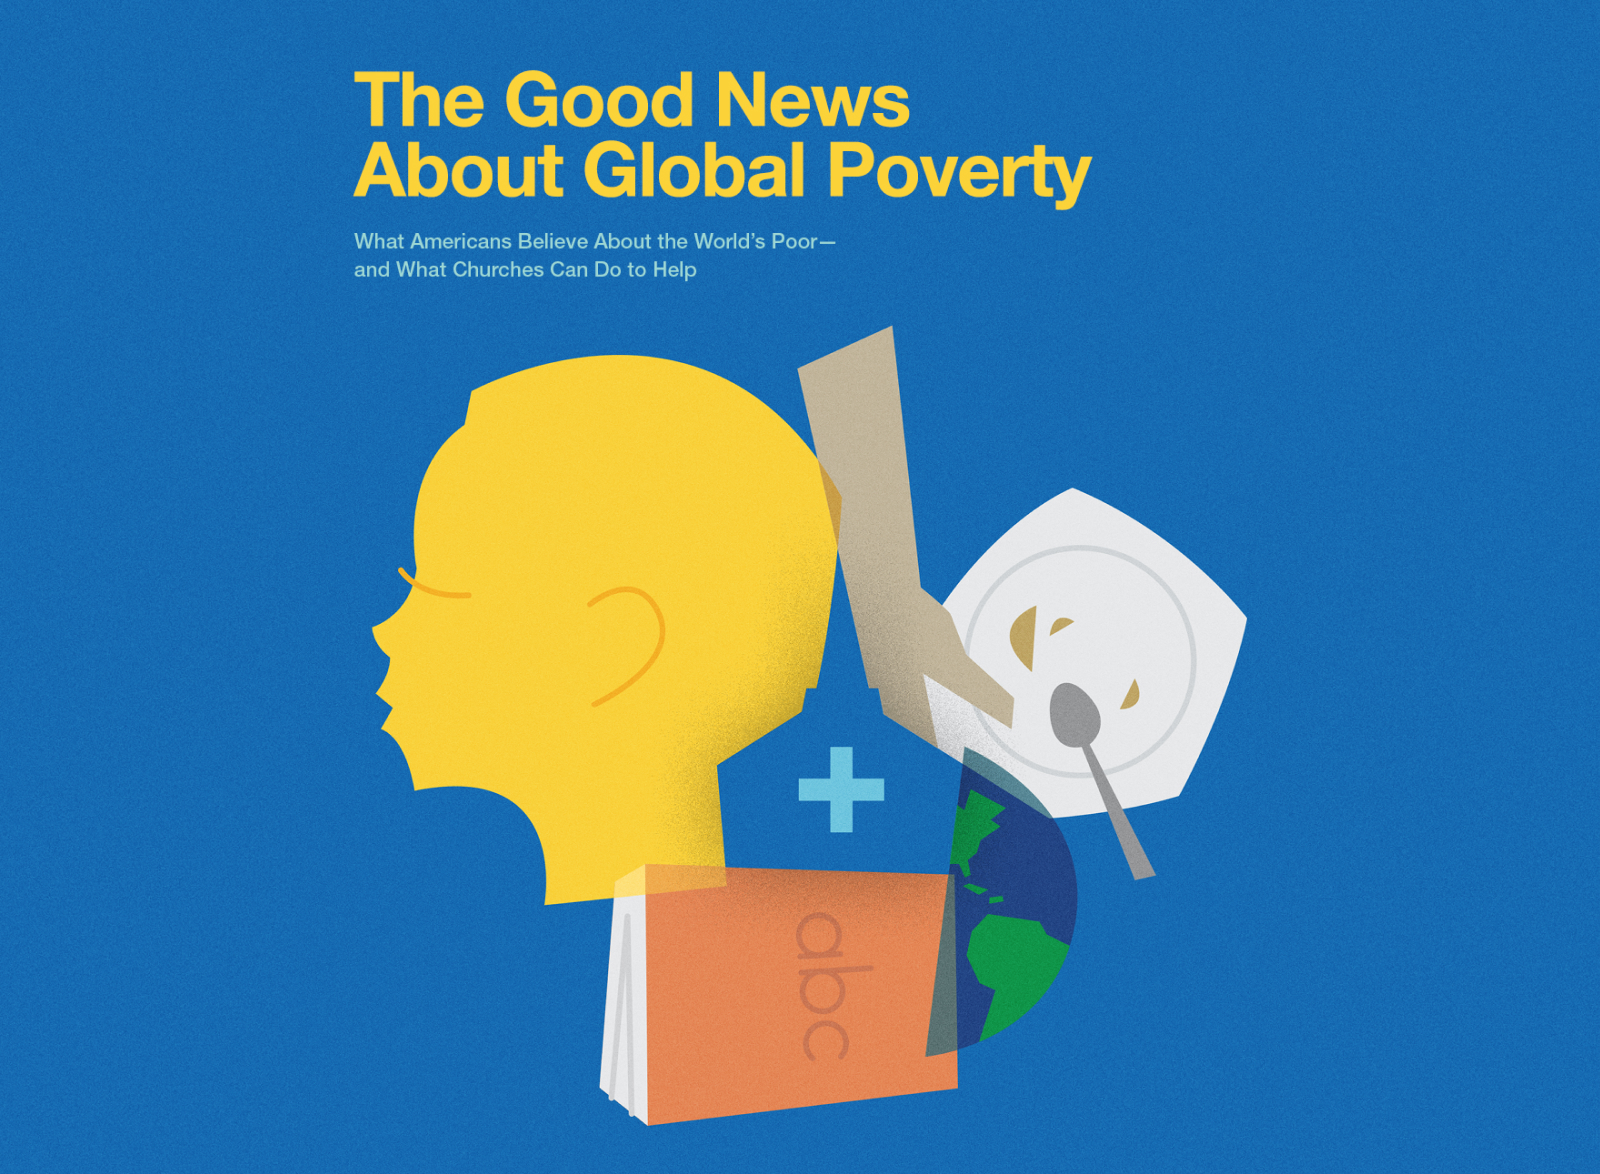 The Good News About Global Poverty